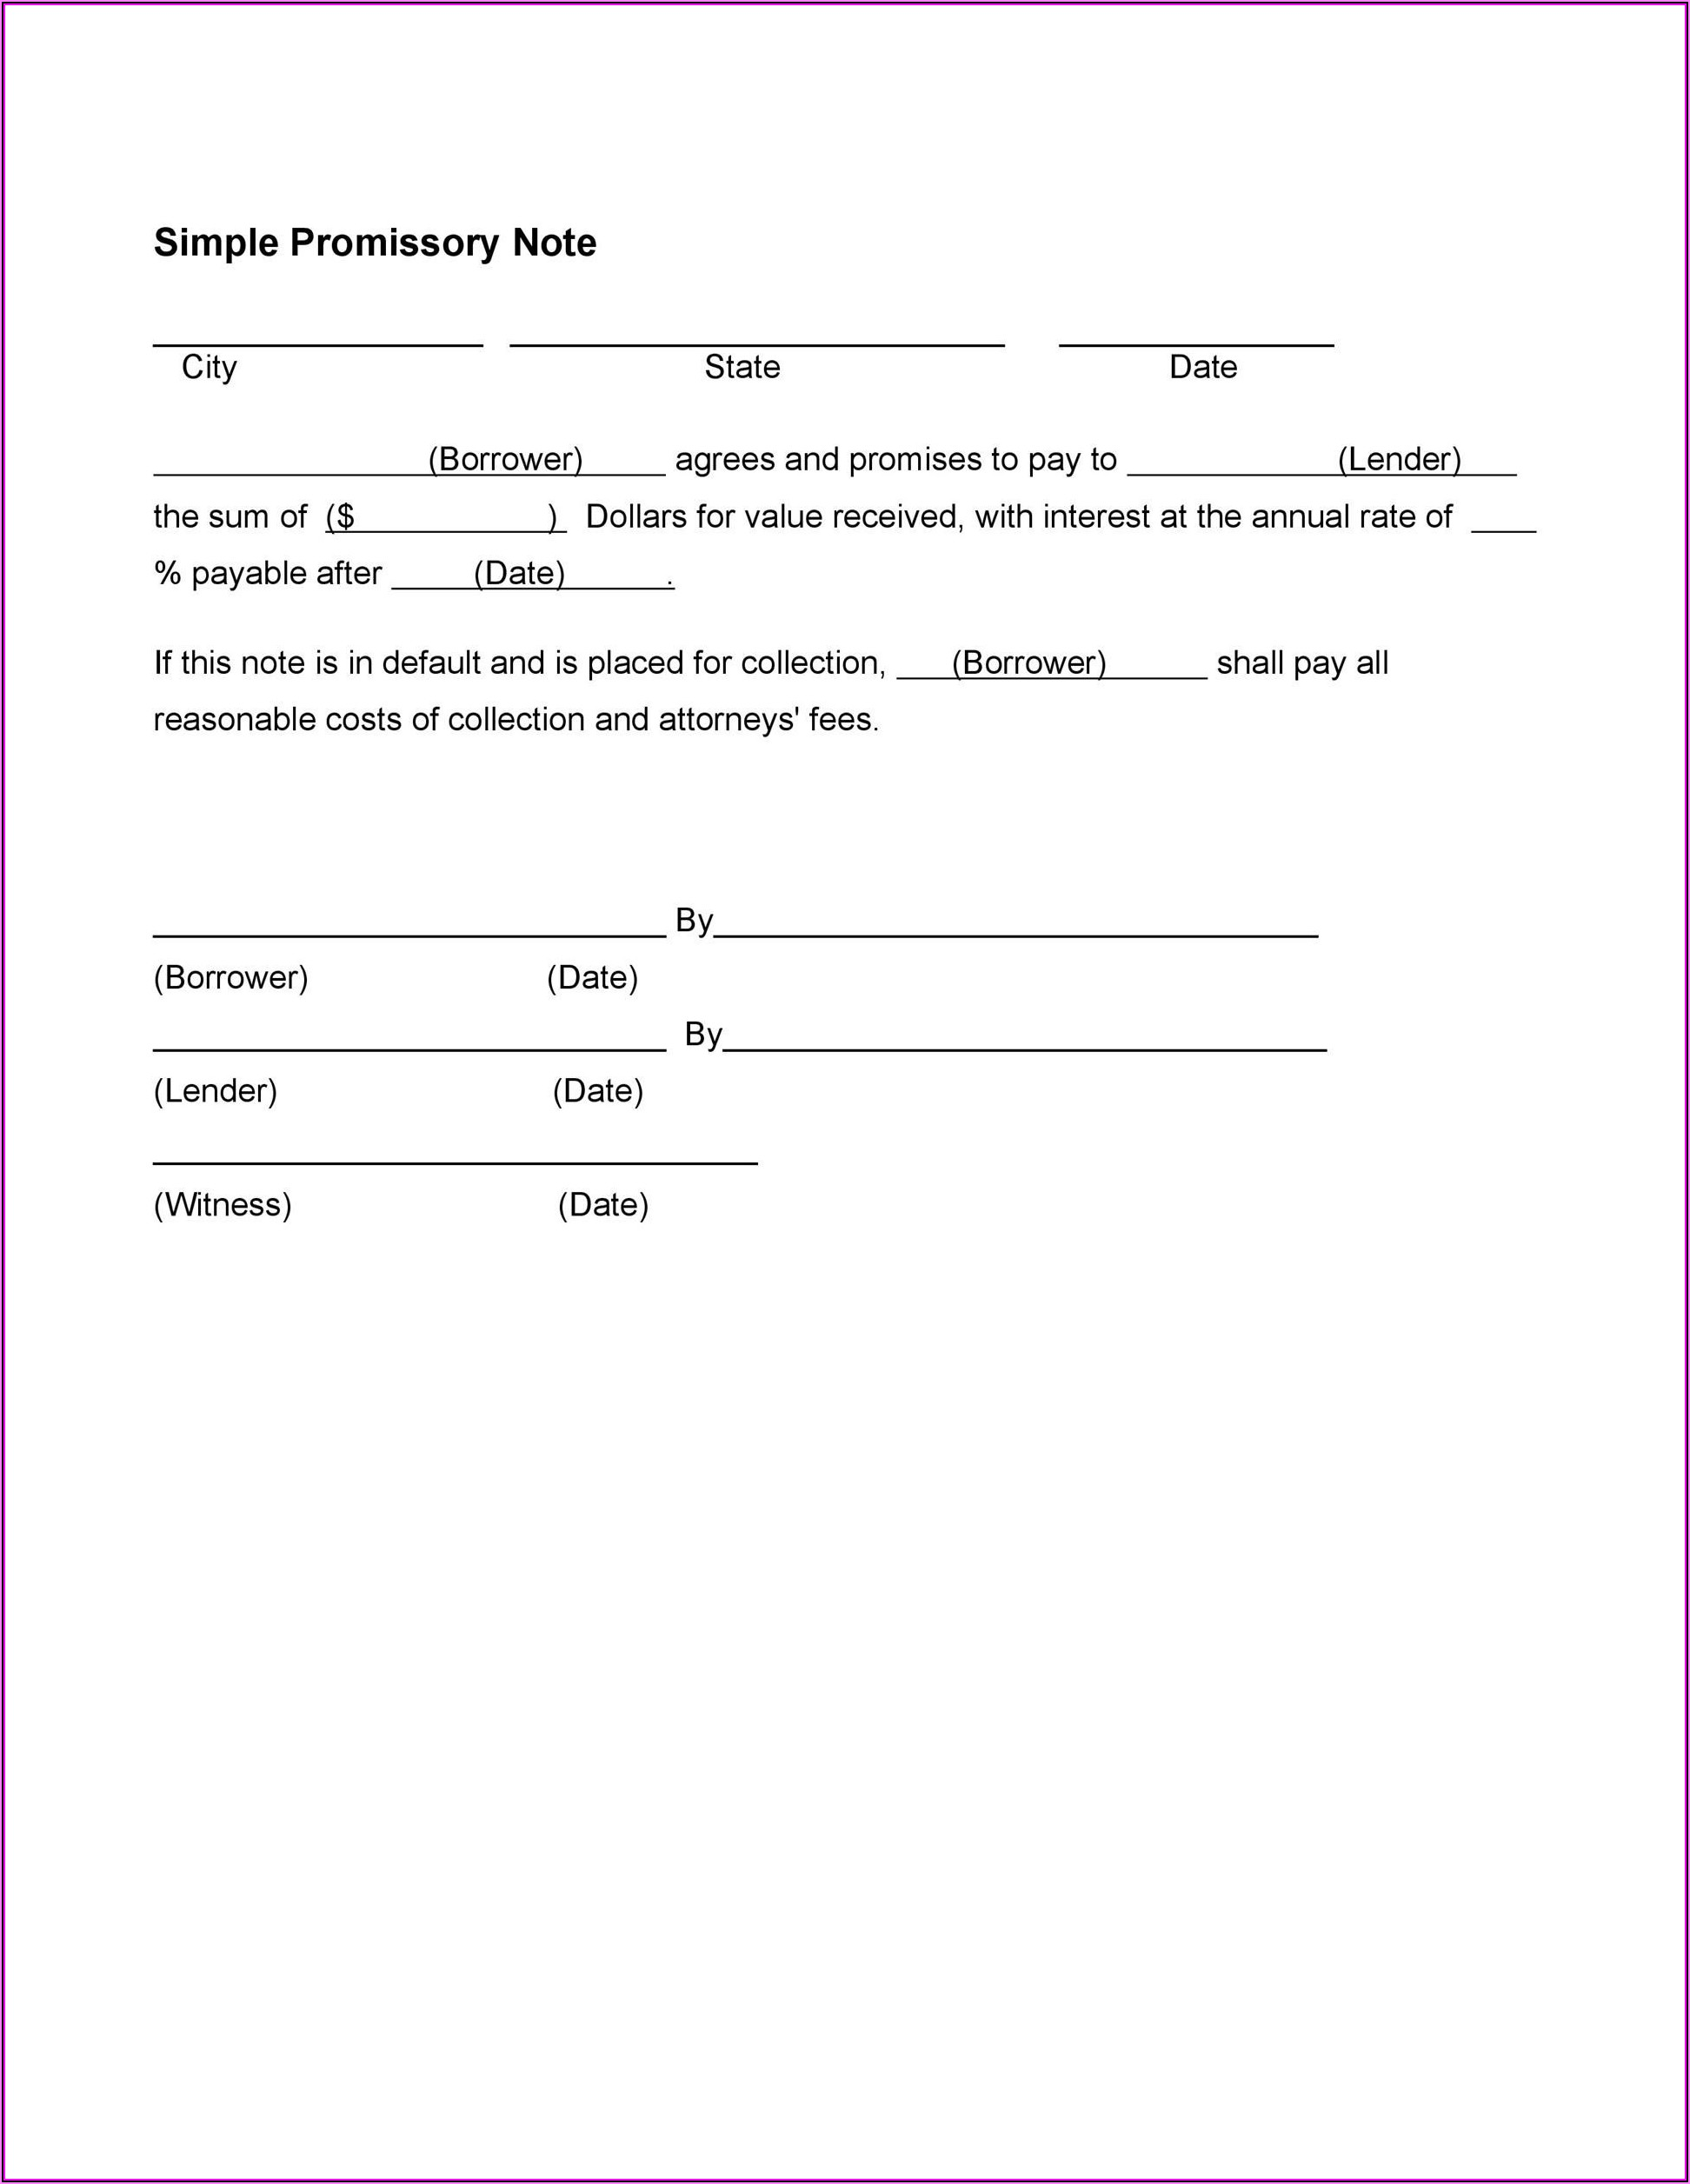 Simple Promissory Note Template California